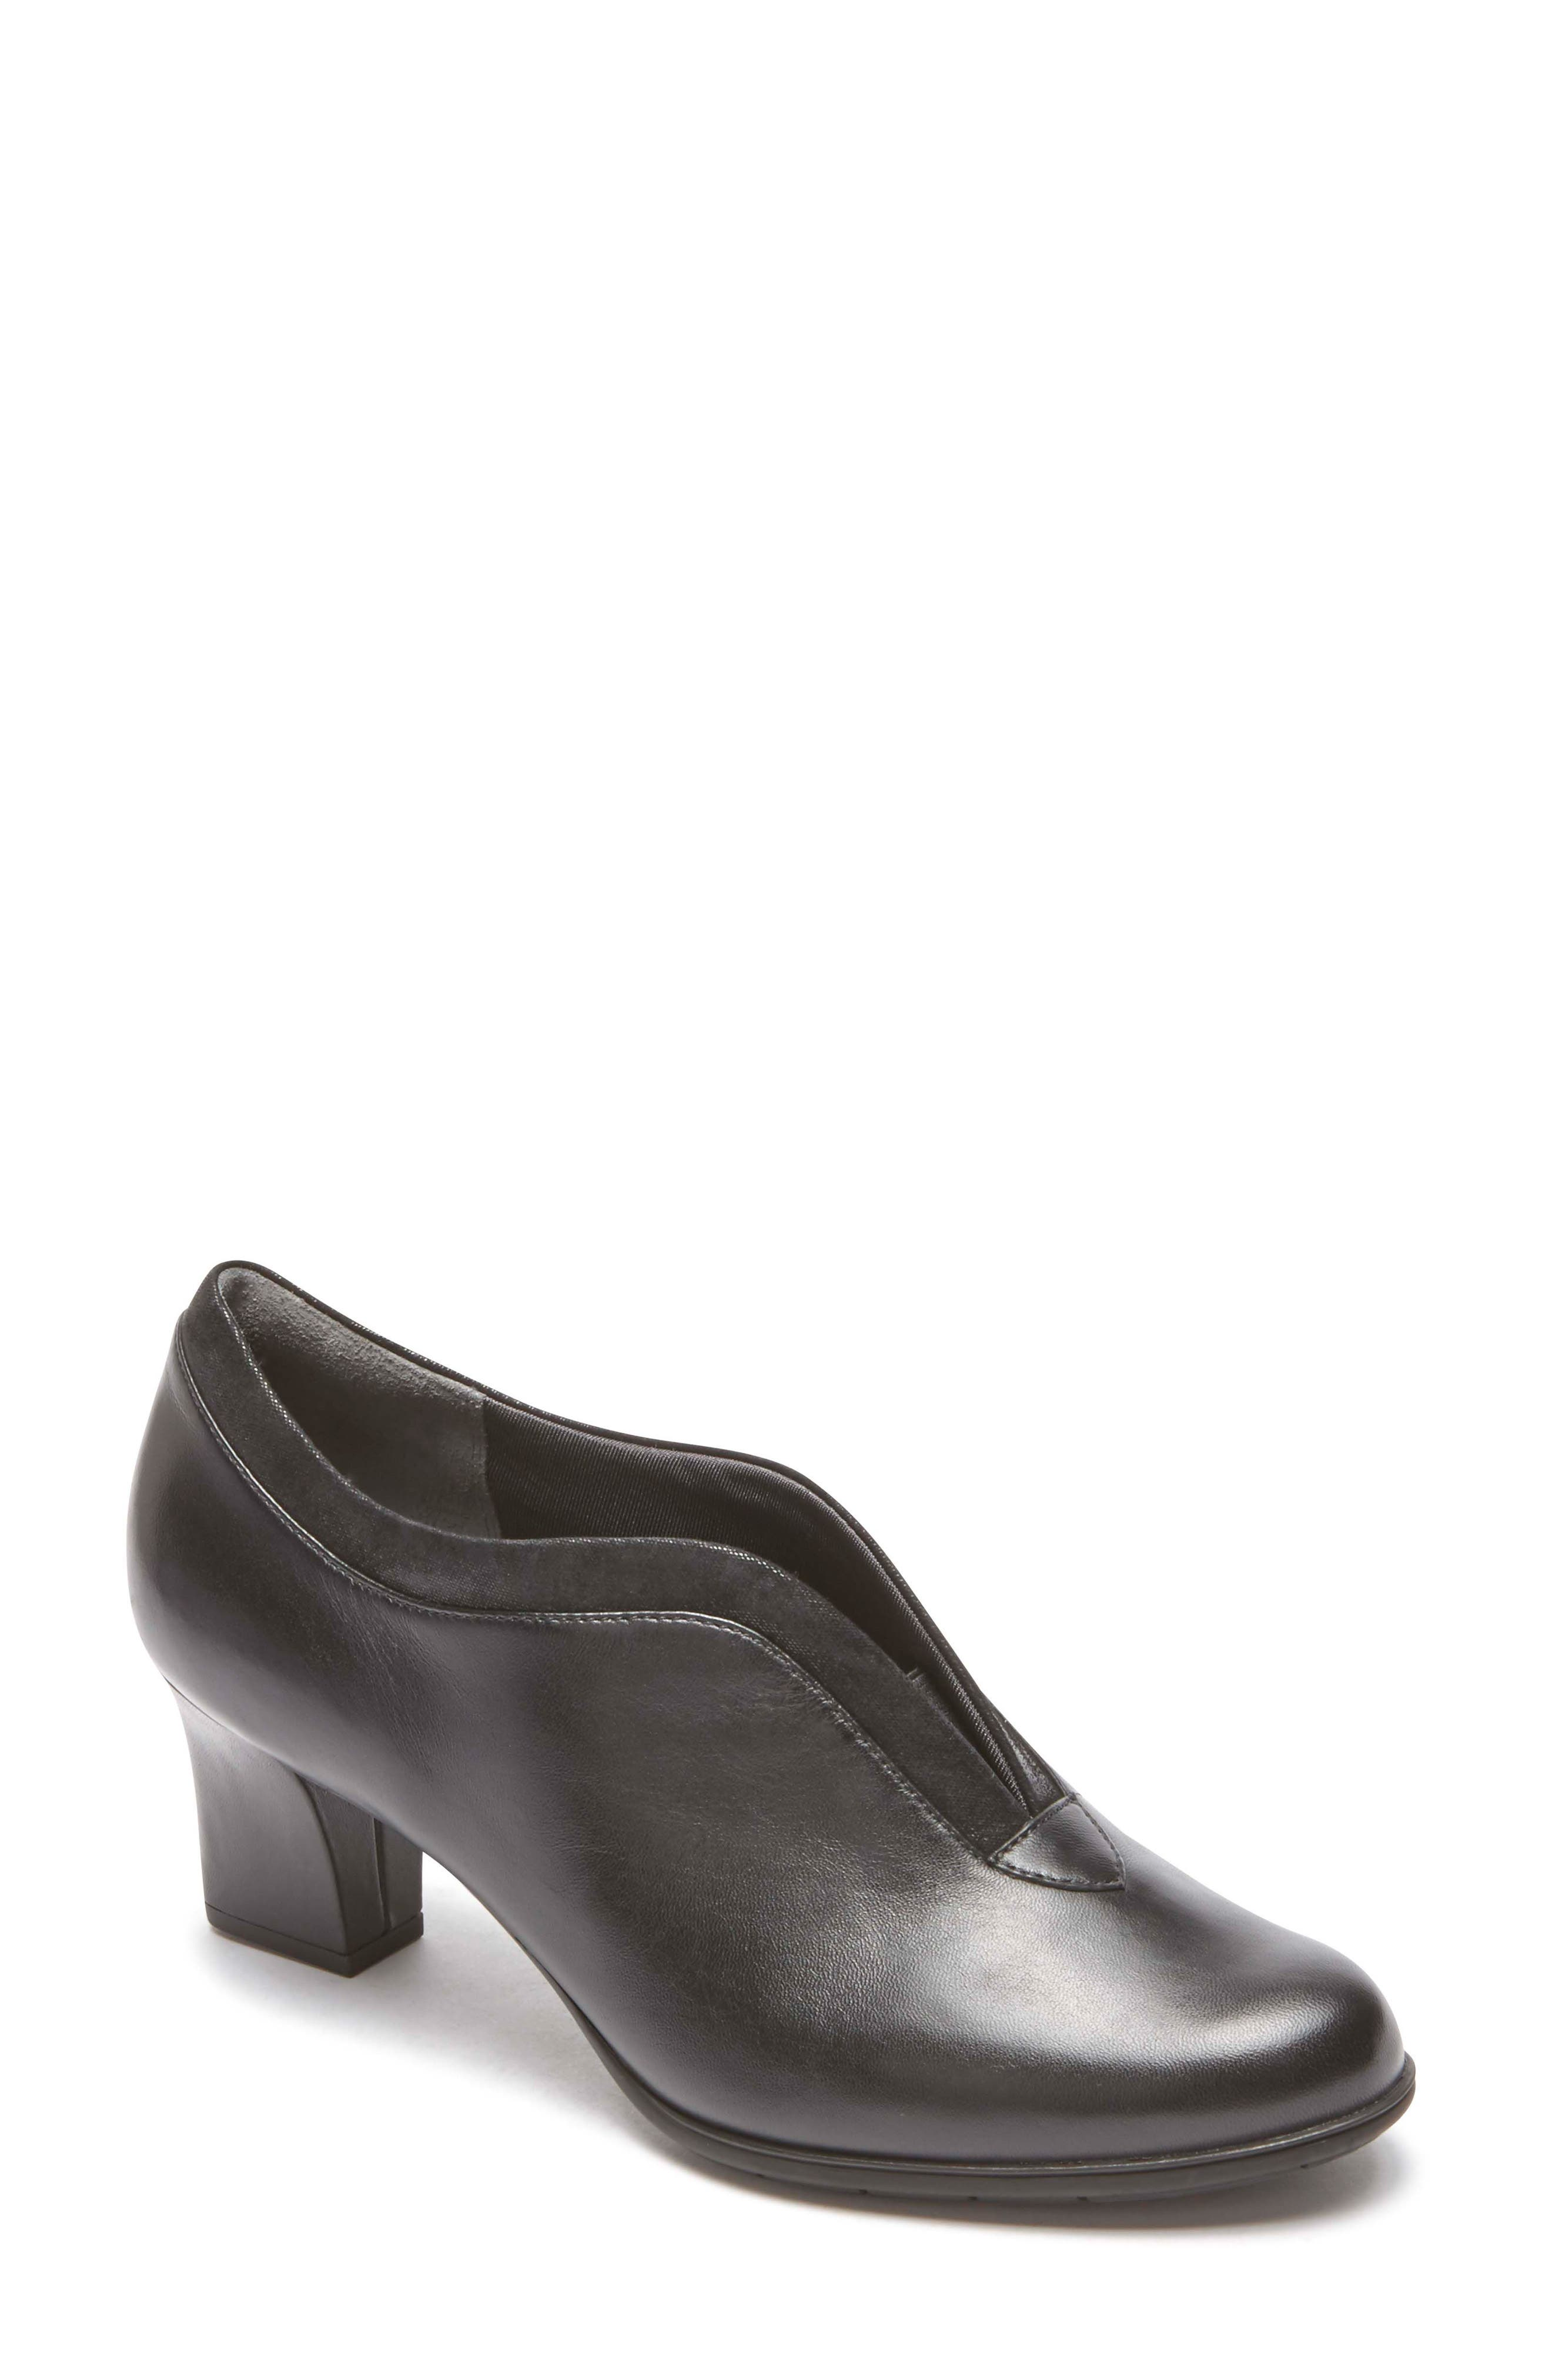 Esty Luxe Pump,                             Main thumbnail 1, color,                             BLACK LEATHER